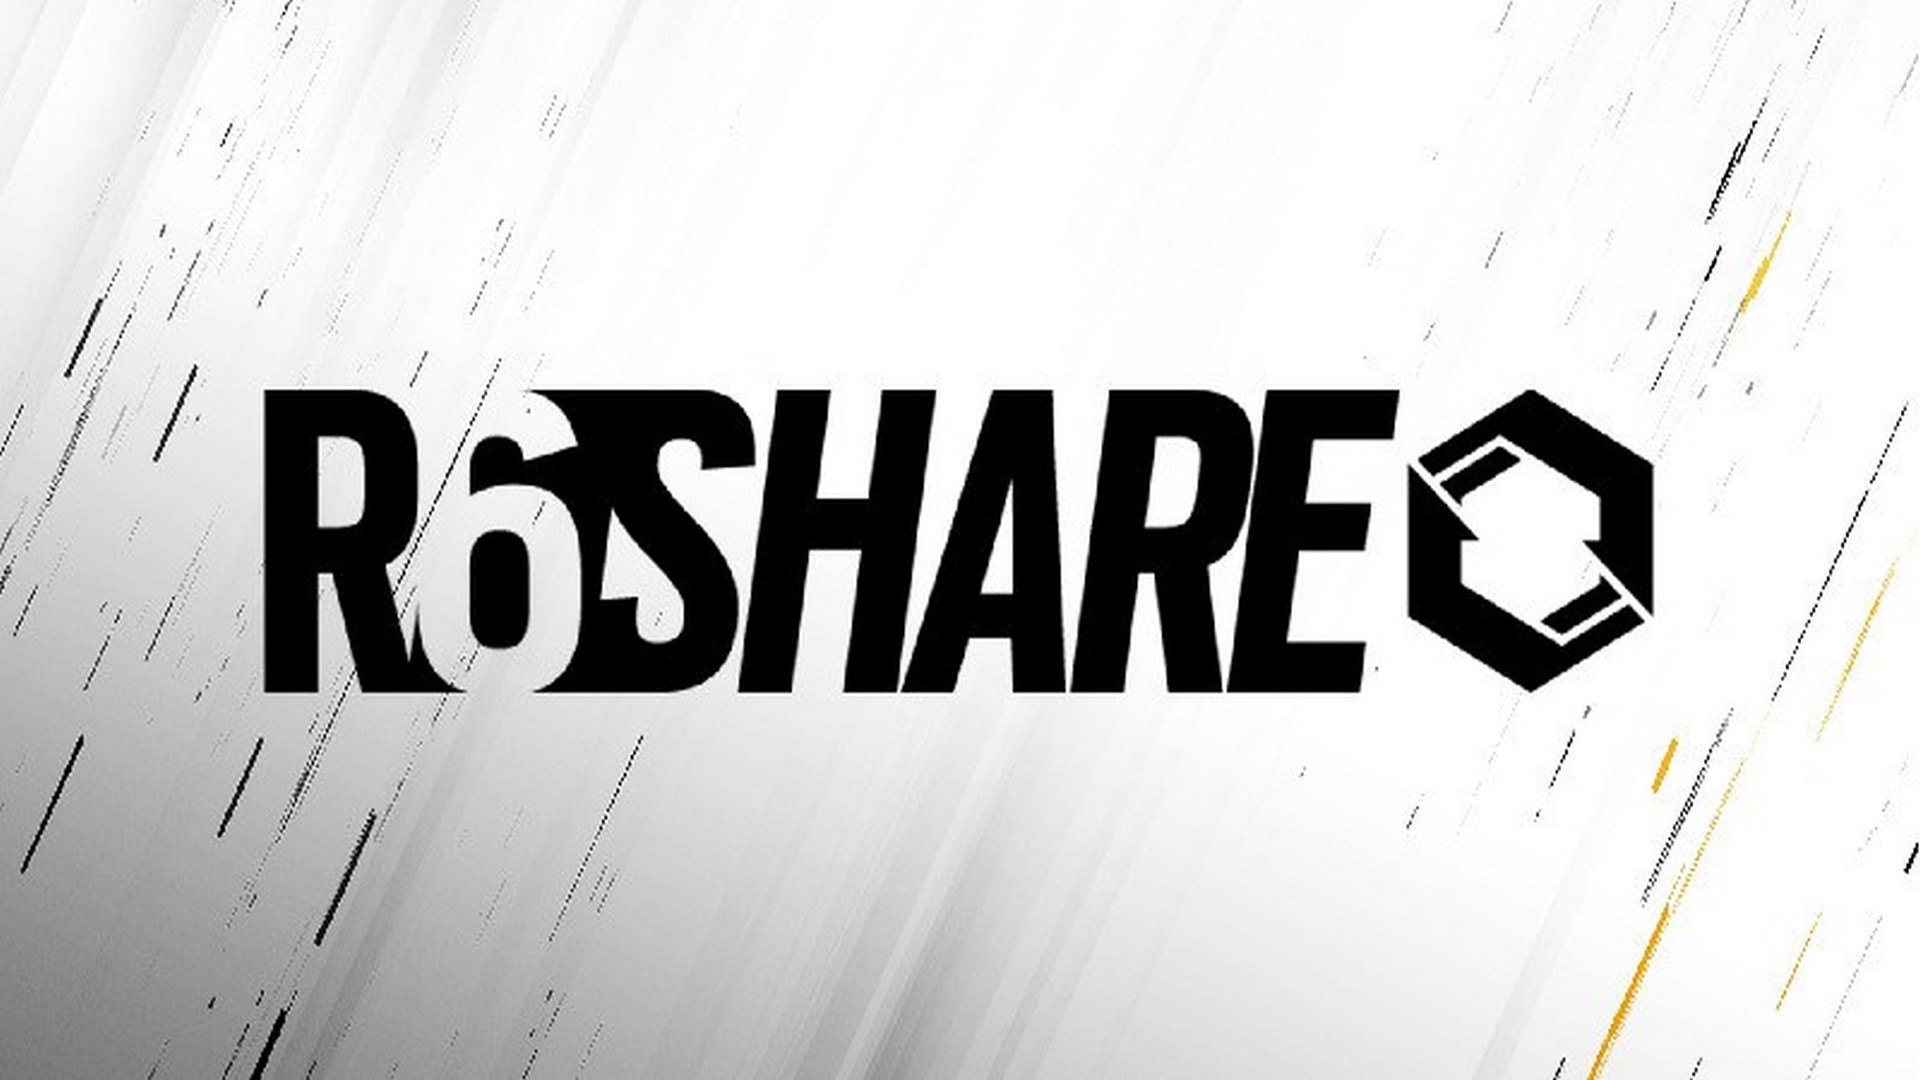 R6 Share: Ubisoft Reveals The 42 Selected Teams And Tier Placements